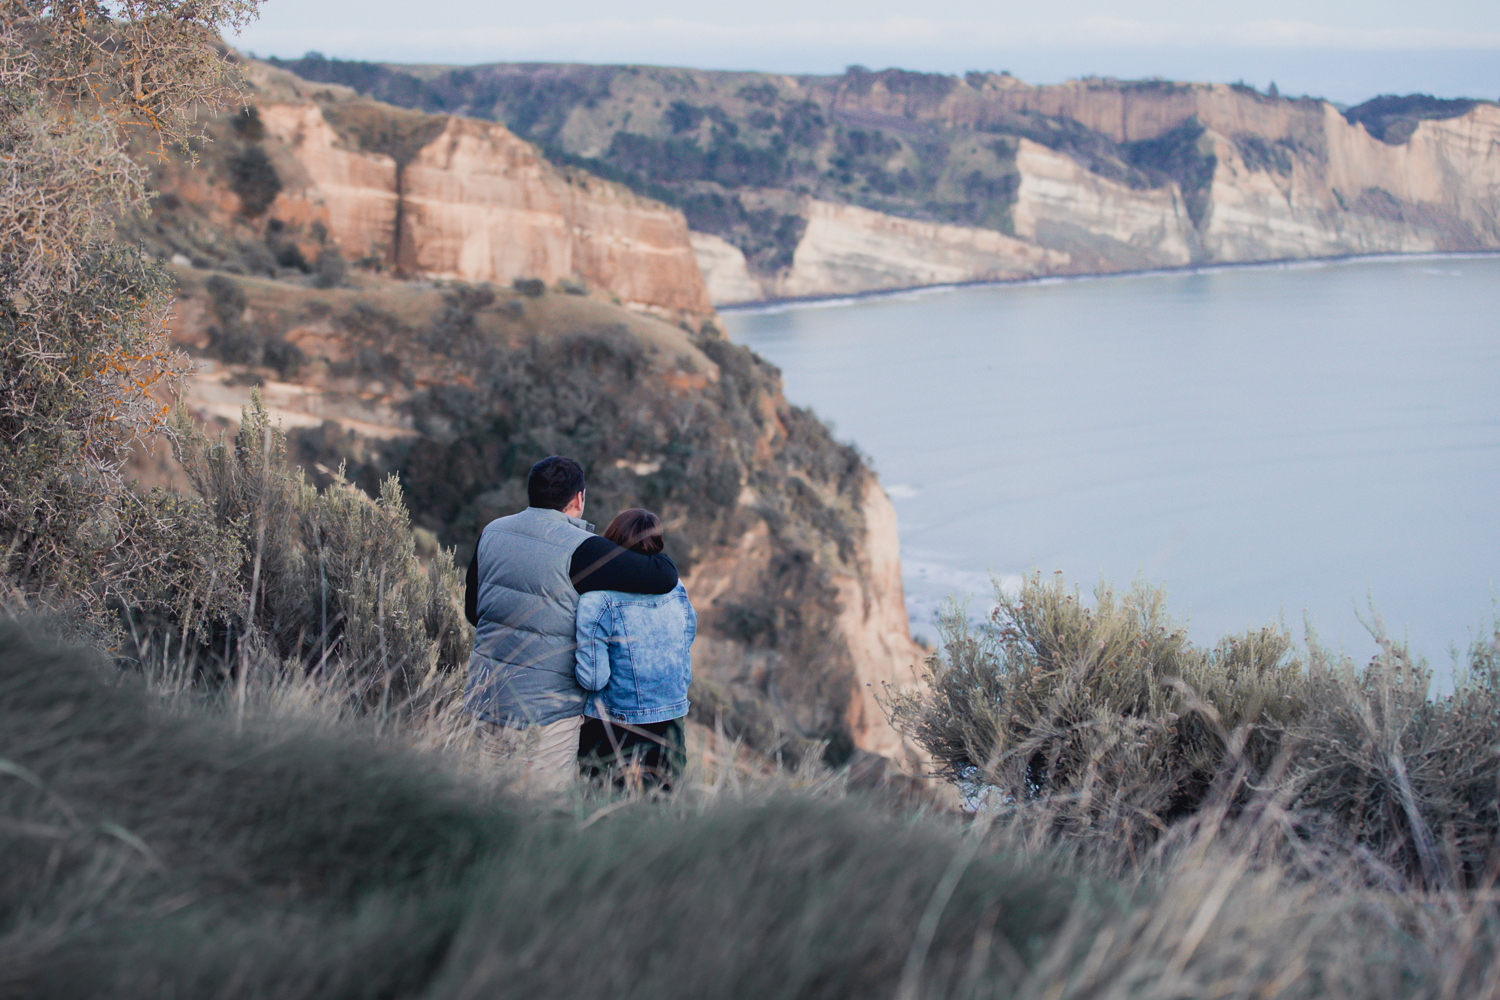 cape-kidnappers-golf-course-at-sunrise-hawkes-bay-looking-out-over-the-cliffs.jpg